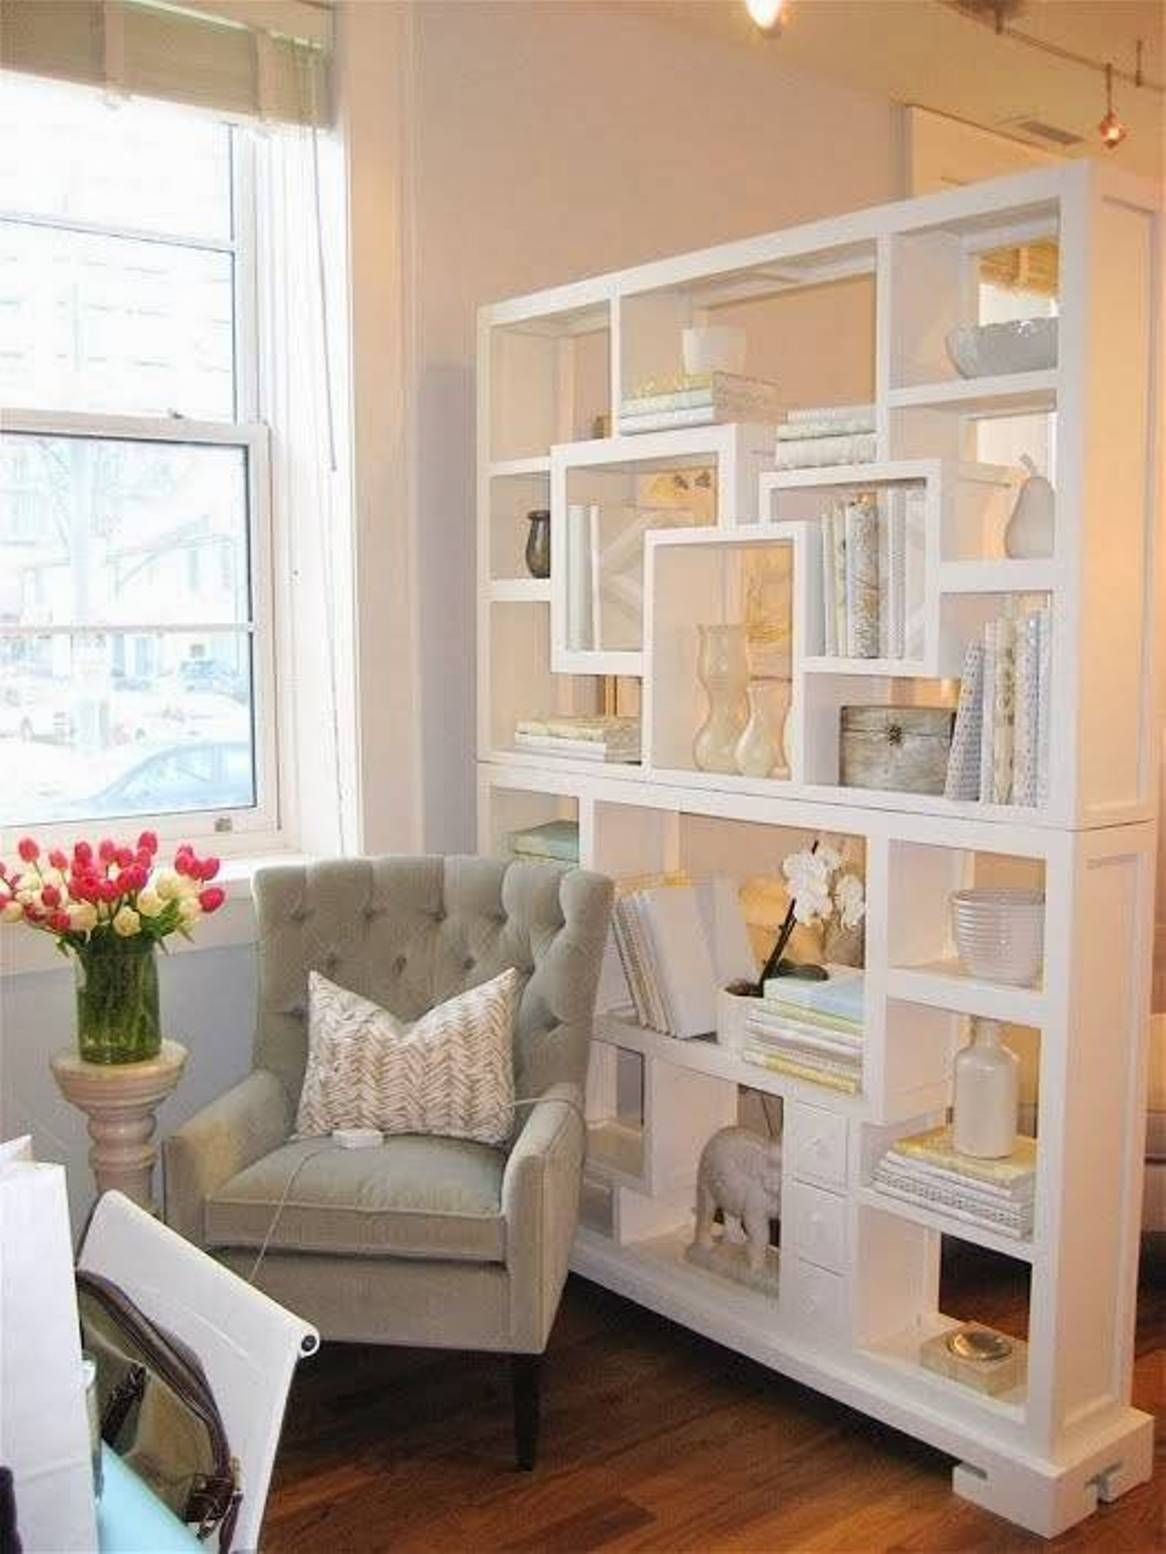 Freestanding Bookcase Living Room Divider : Living Room Divider Ideas